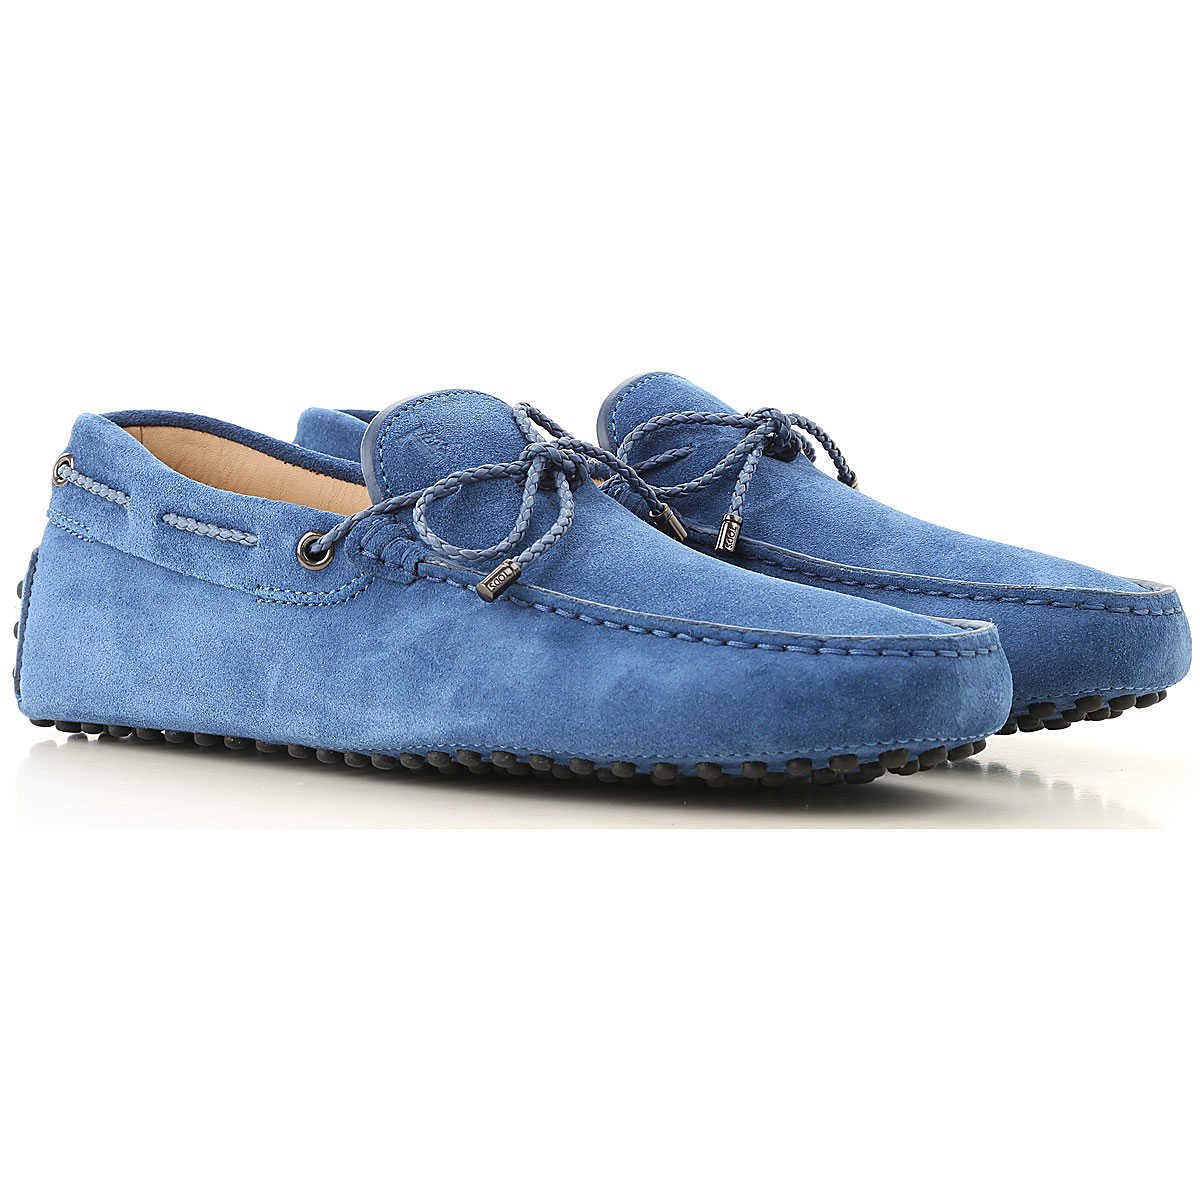 Tods Loafers for Men On Sale Bright Bluette DK - GOOFASH - Mens LOAFERS